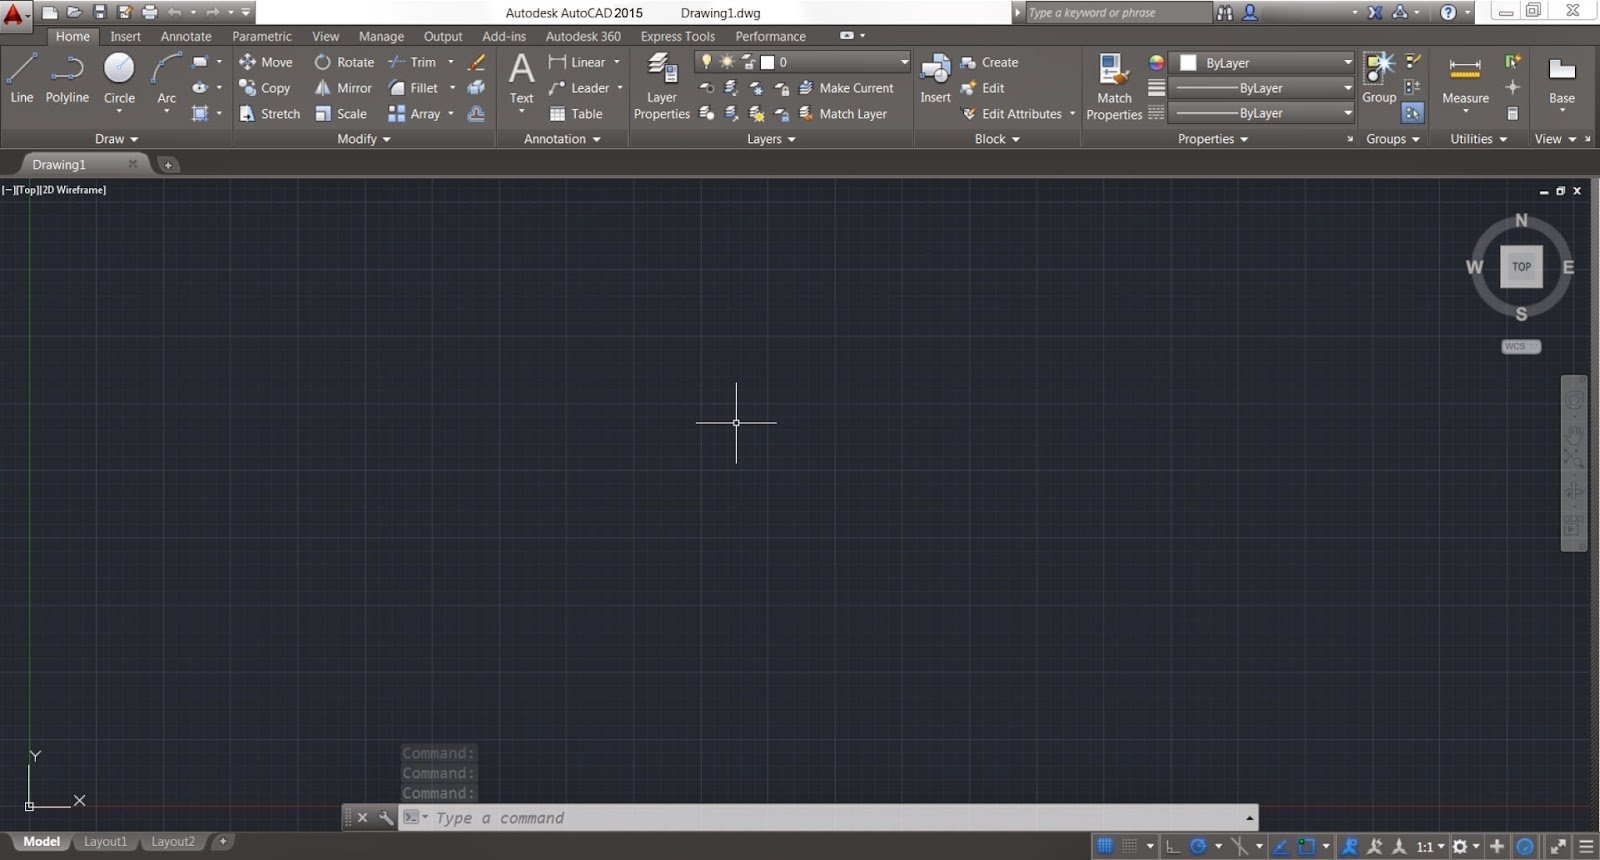 AutoCAD 2020 For Windows 10 Free Download